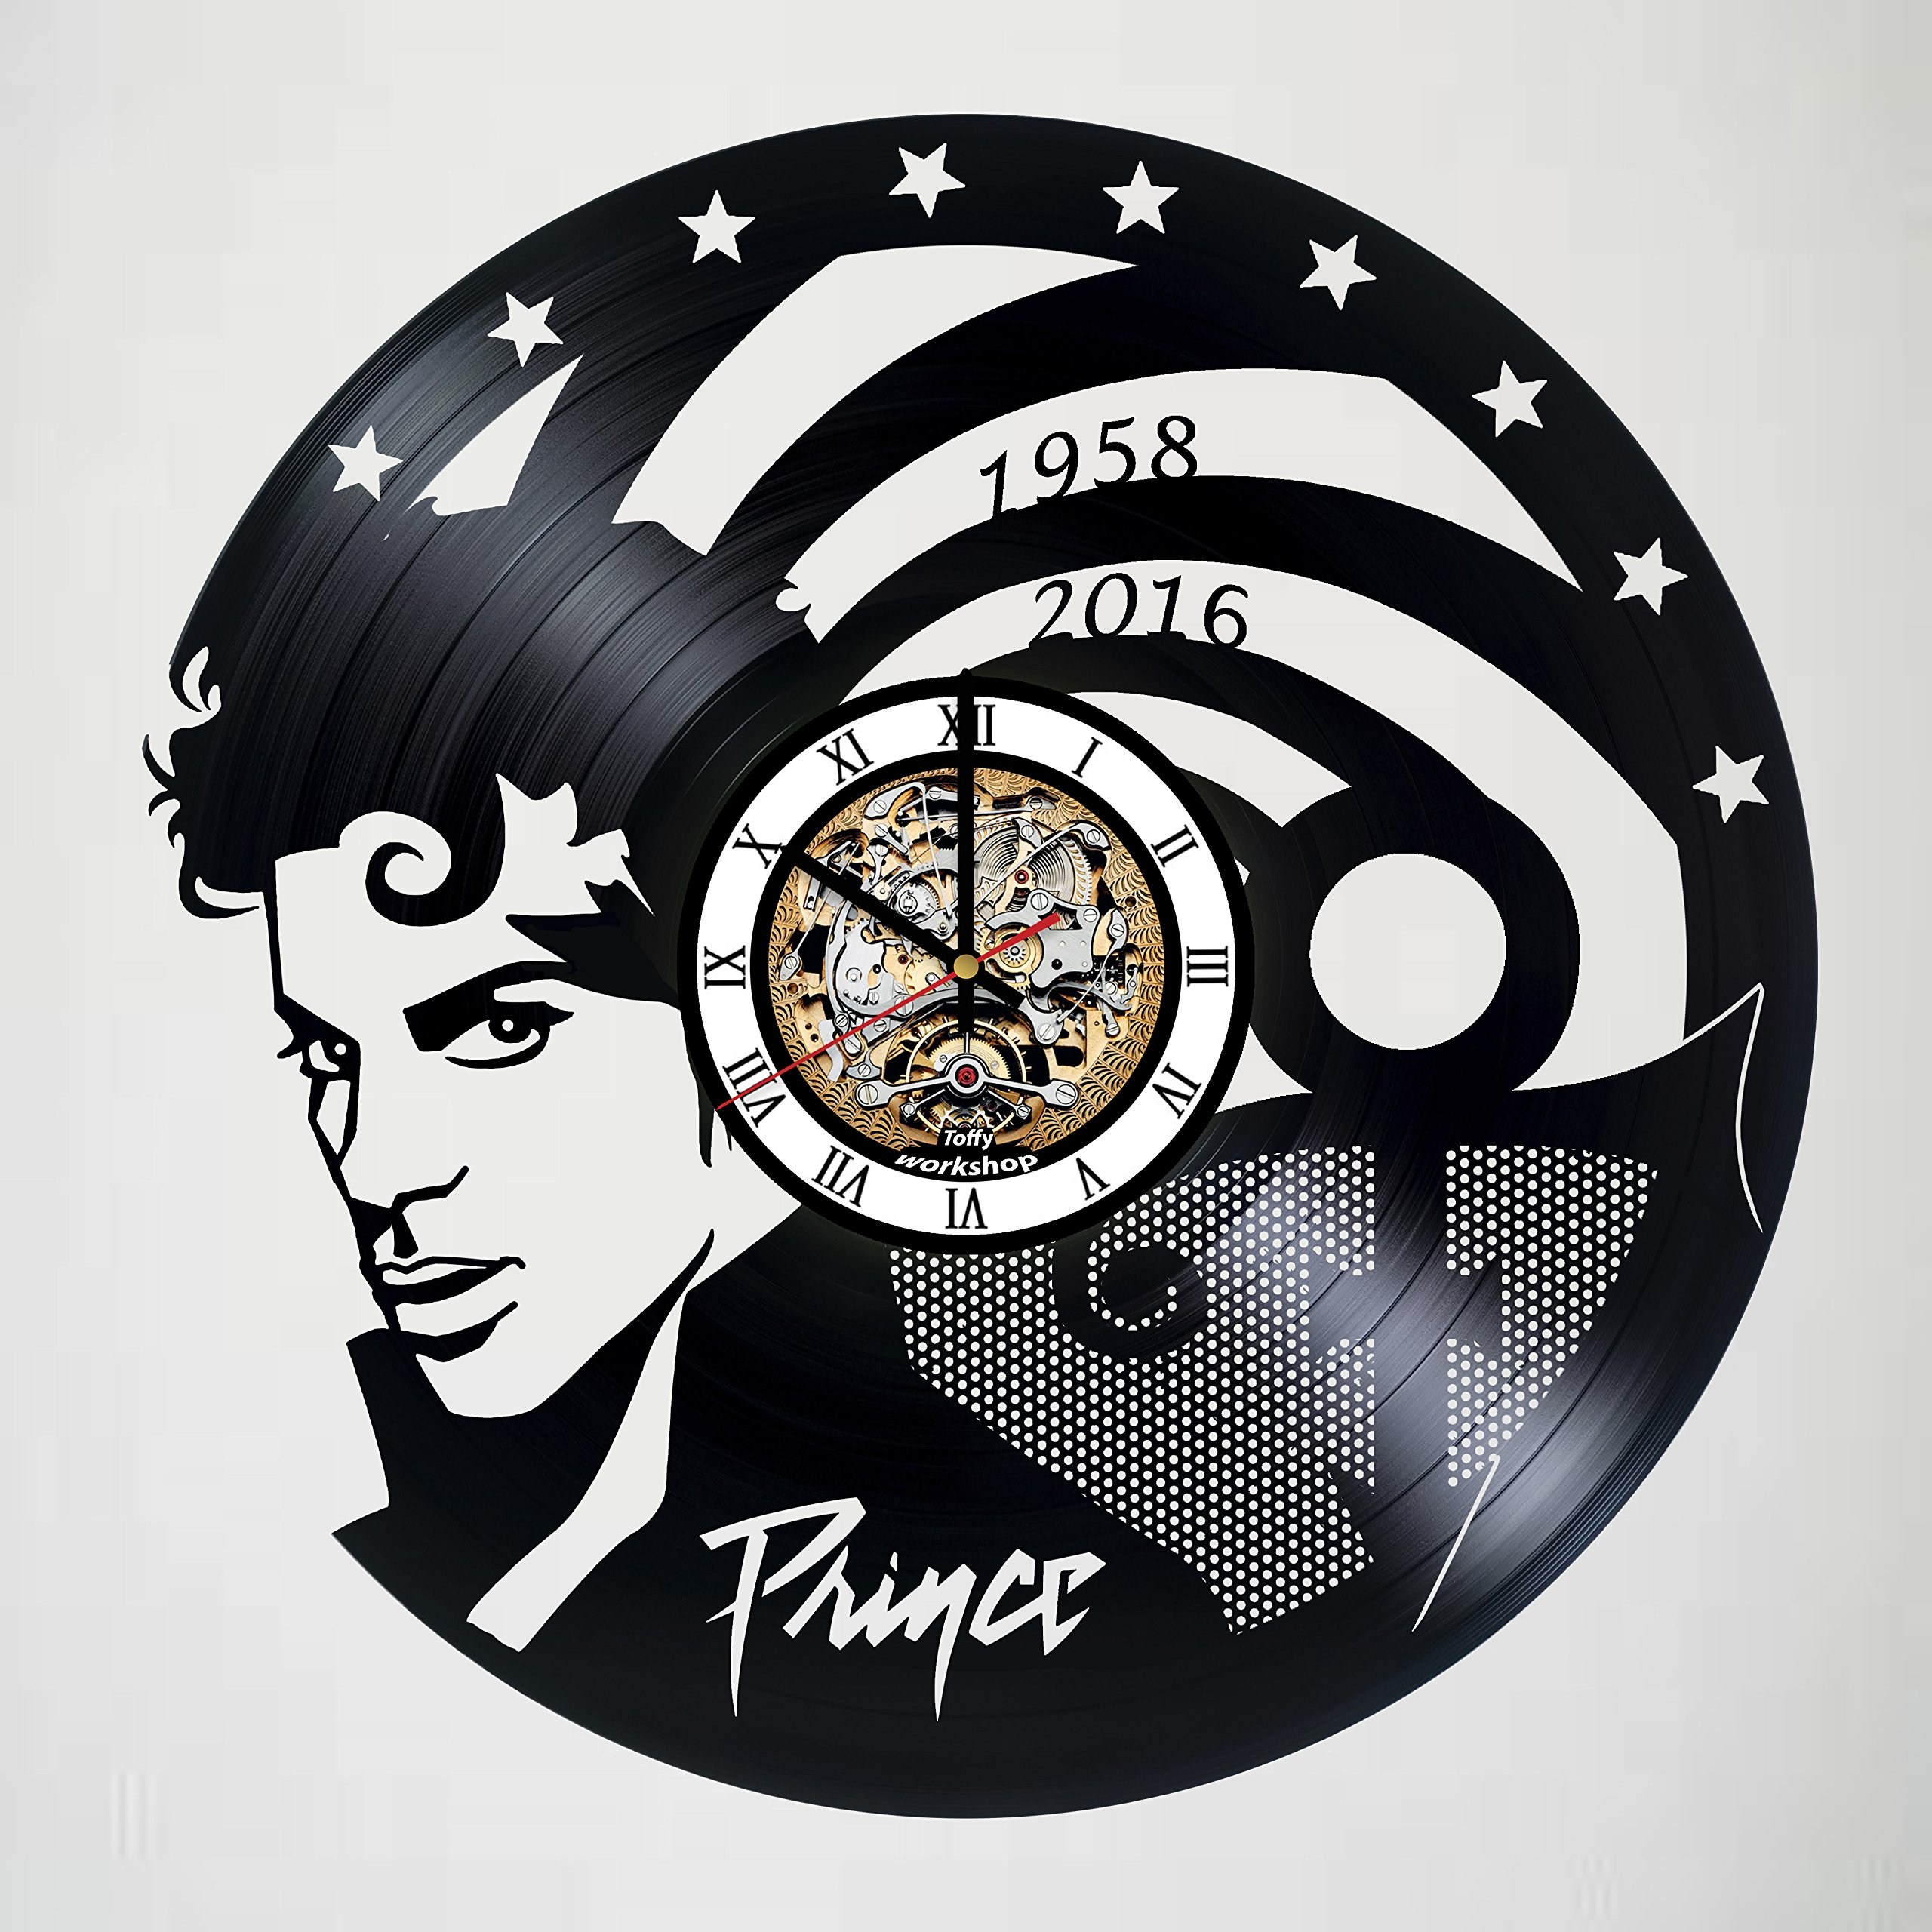 Toffy Workshop Prince - art vinyl wall clock - handmade -artwork - unique - home - bedroom - living - kids room -nursery - wall - decor - great gifts - idea for birthday, wedding, anniversary by Toffy Workshop (Image #1)